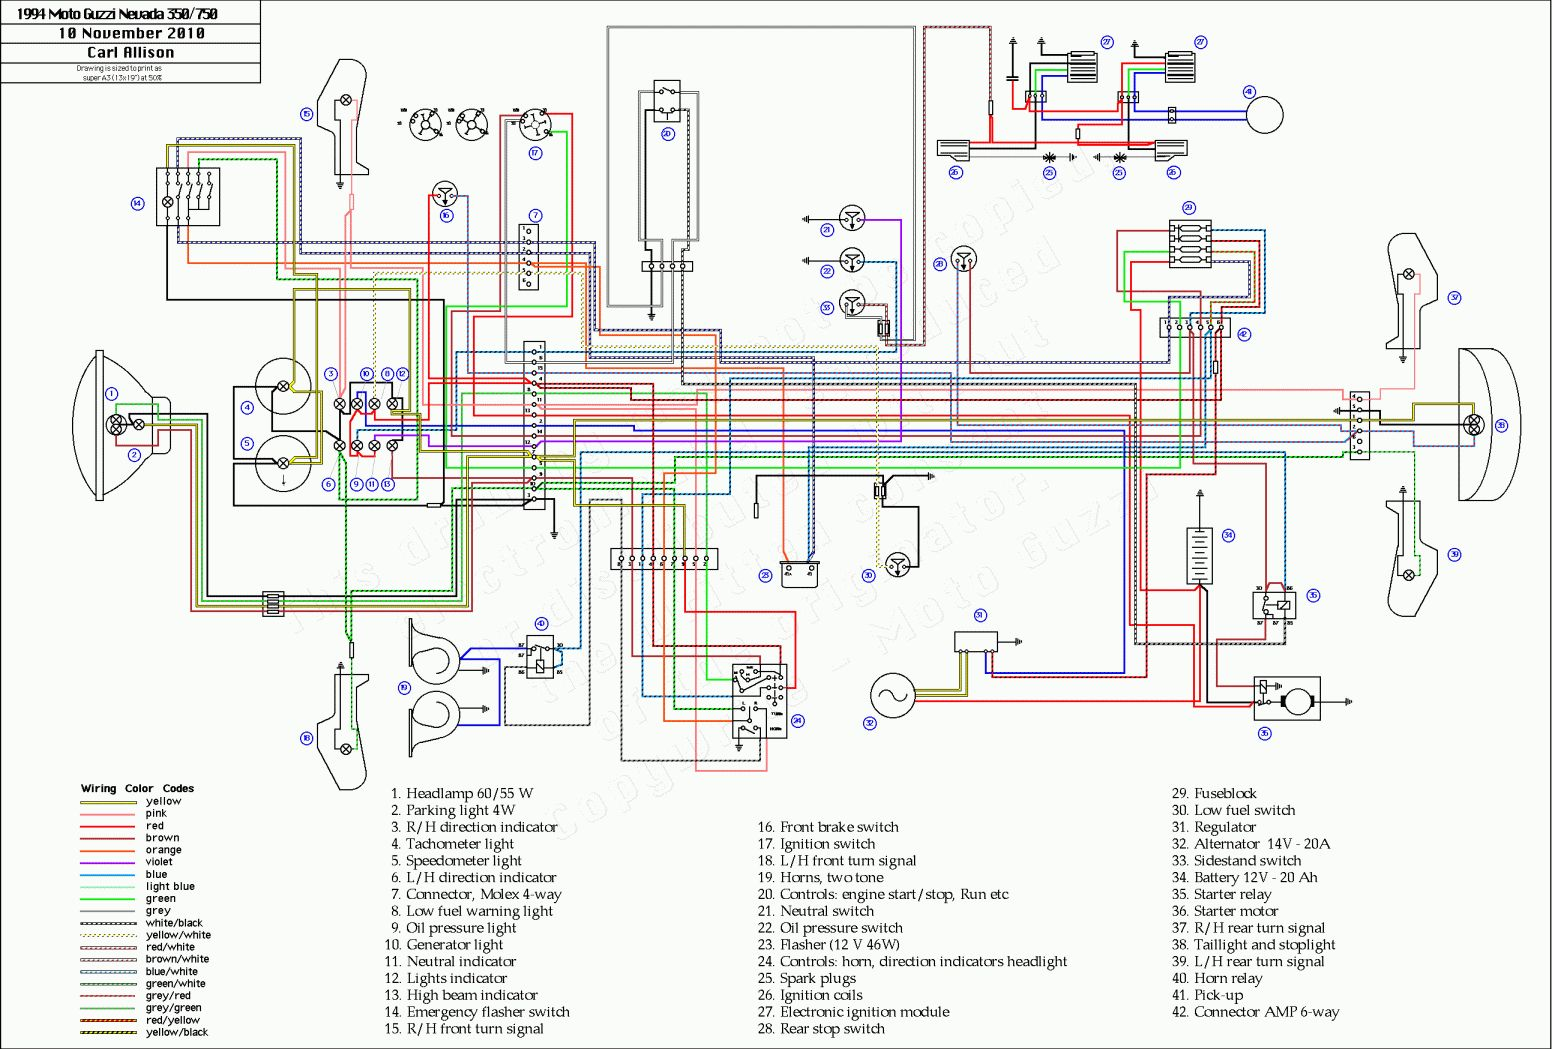 Yamaha V50 Motorcycle Wiring Diagram And Sportissimo Html